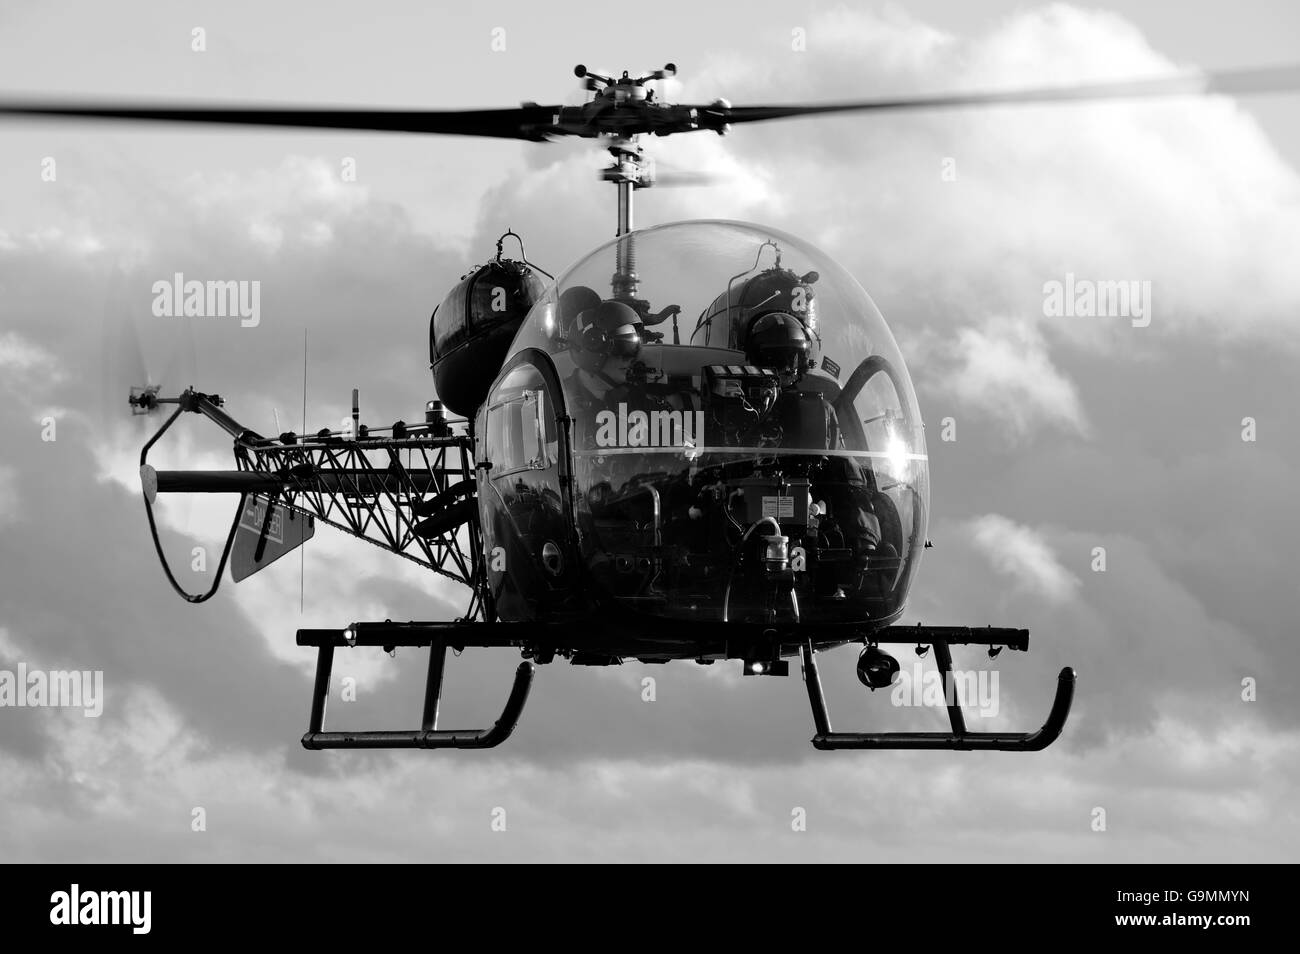 Army Air Corps Bell Sioux, Stock Photo